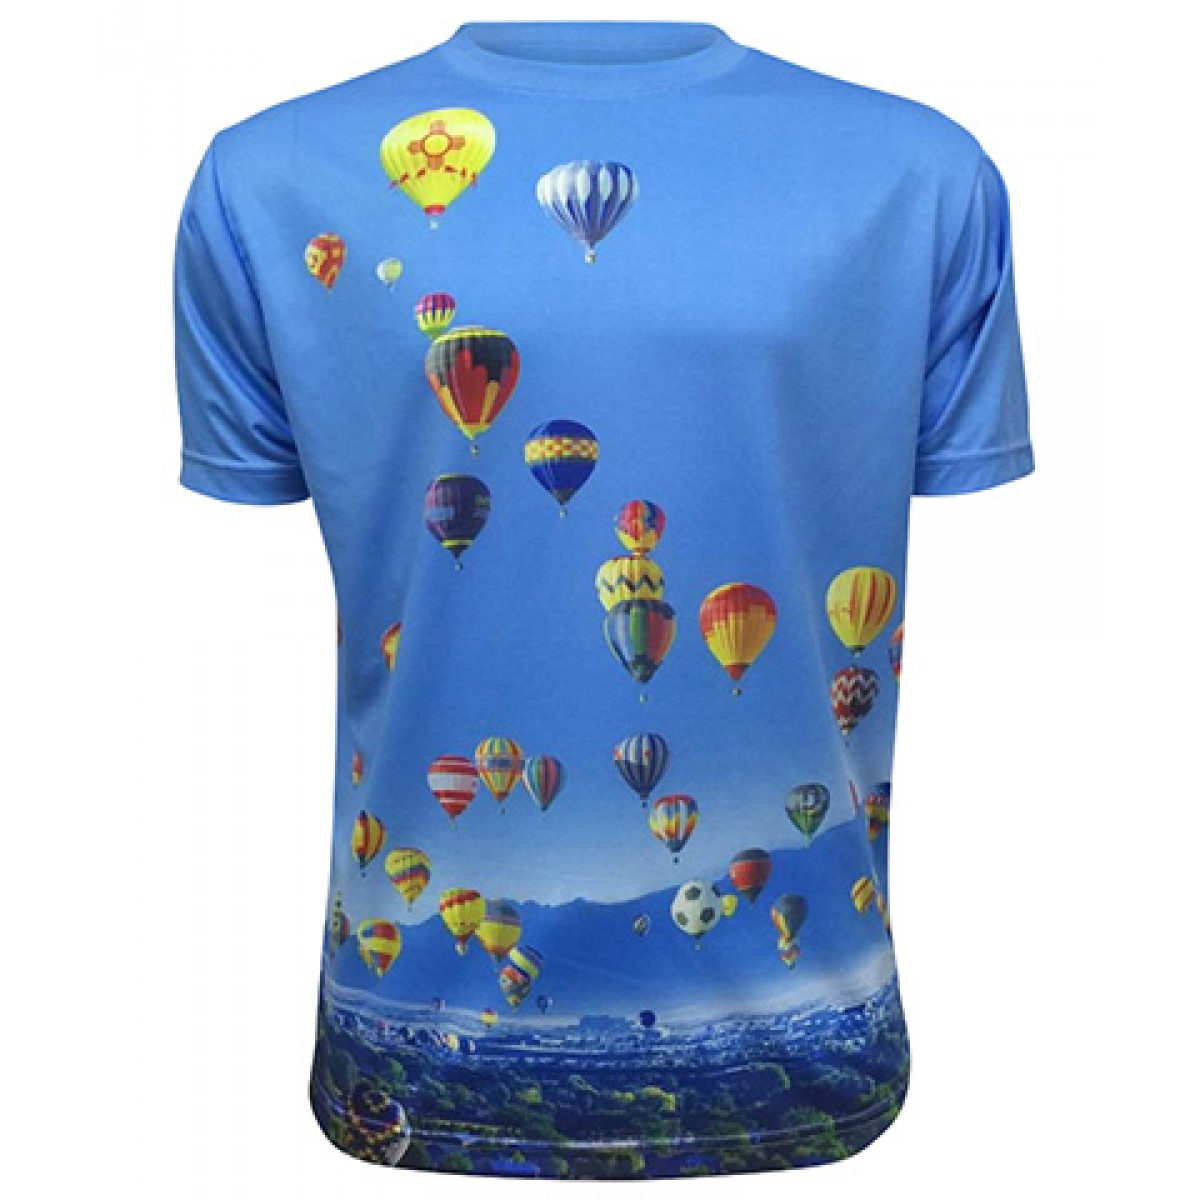 AIBF Sublimated Short Sleeve-Blue-L